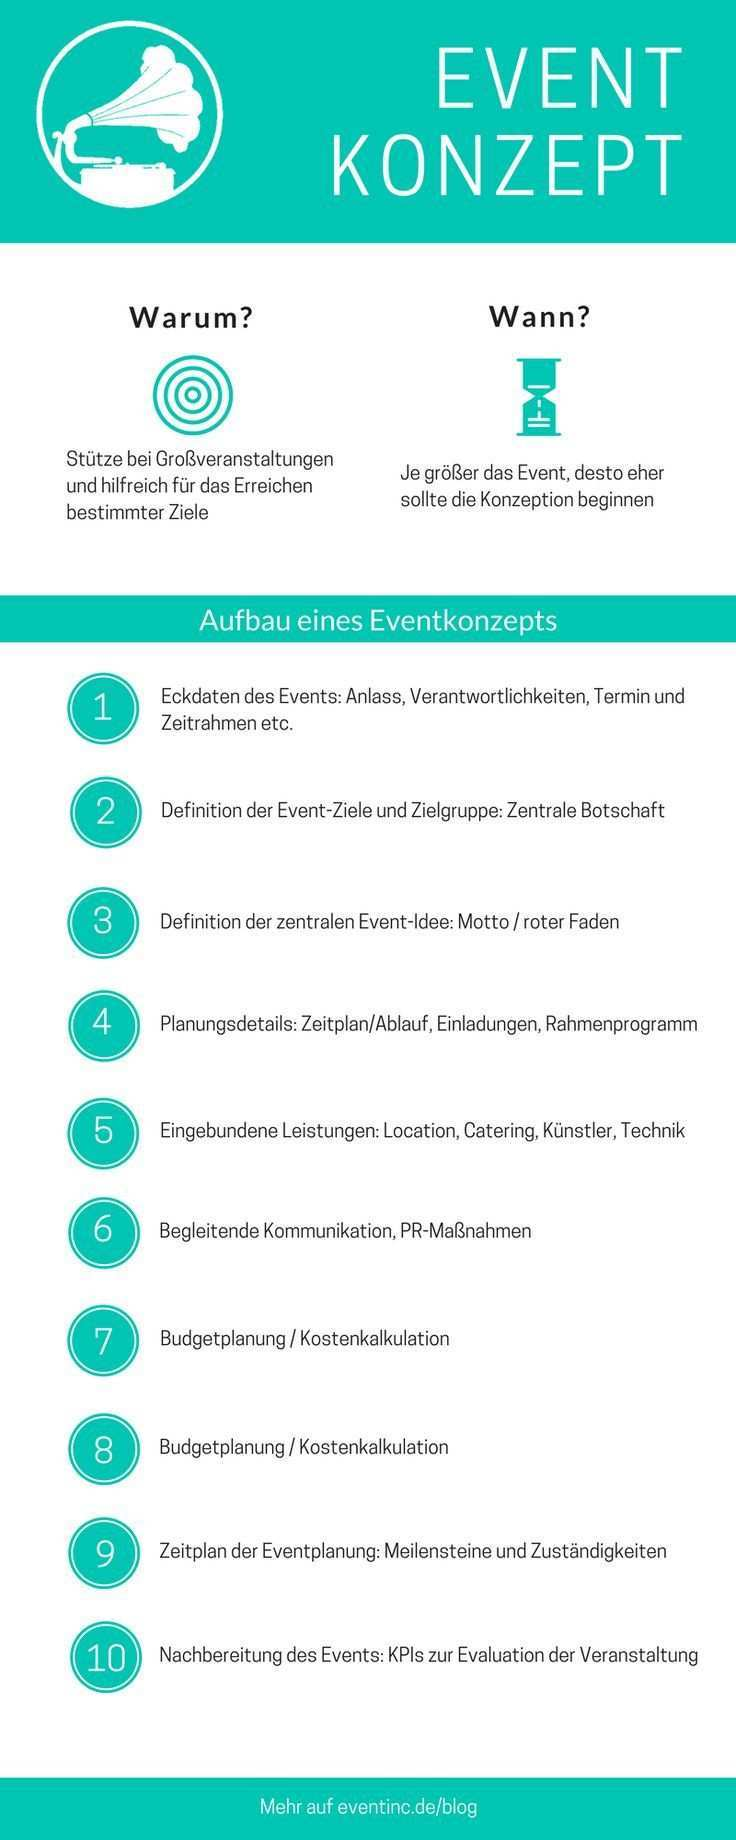 10 Aspects Of An Event Concept What You Need To Know When Developing A Concept Aspects Concept Developing Event Konzept Event Planung Veranstaltung